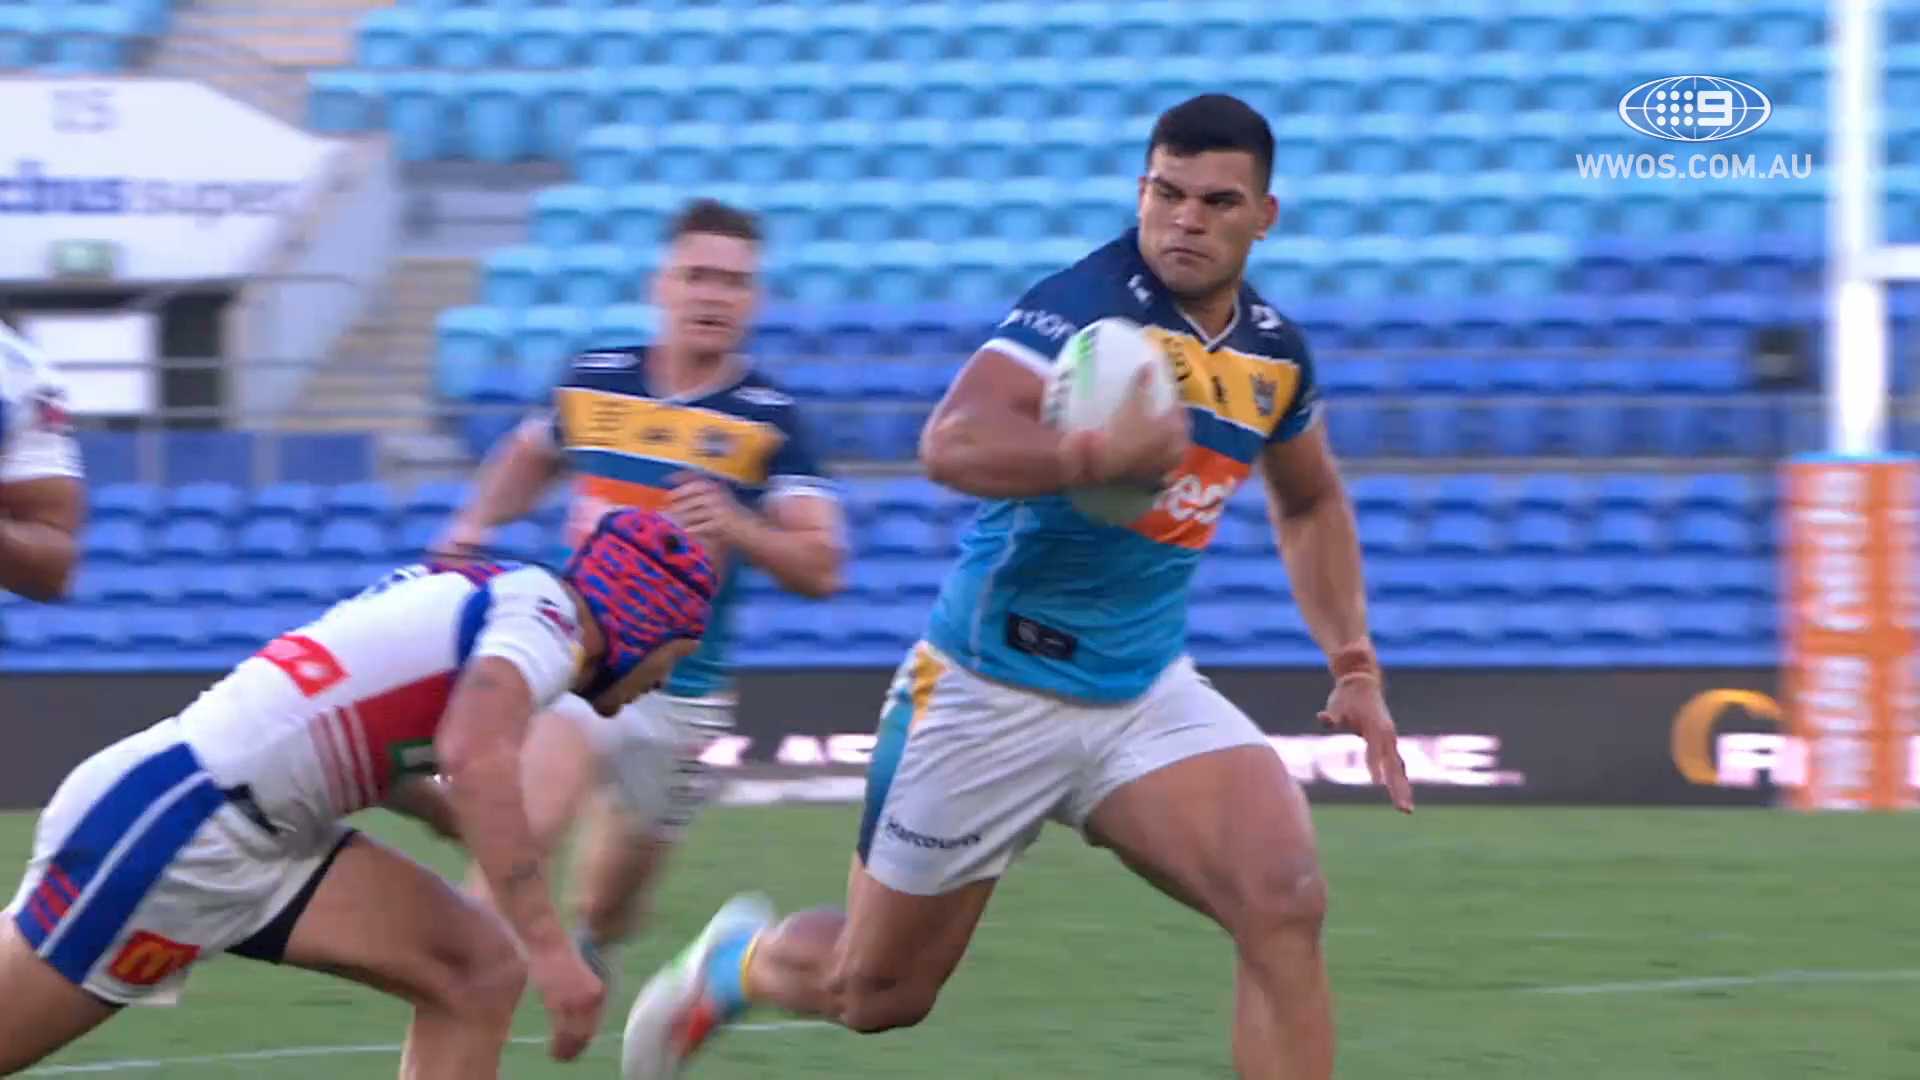 NRL Highlights: David Fifita leads the Titans to a huge win over the Knights.